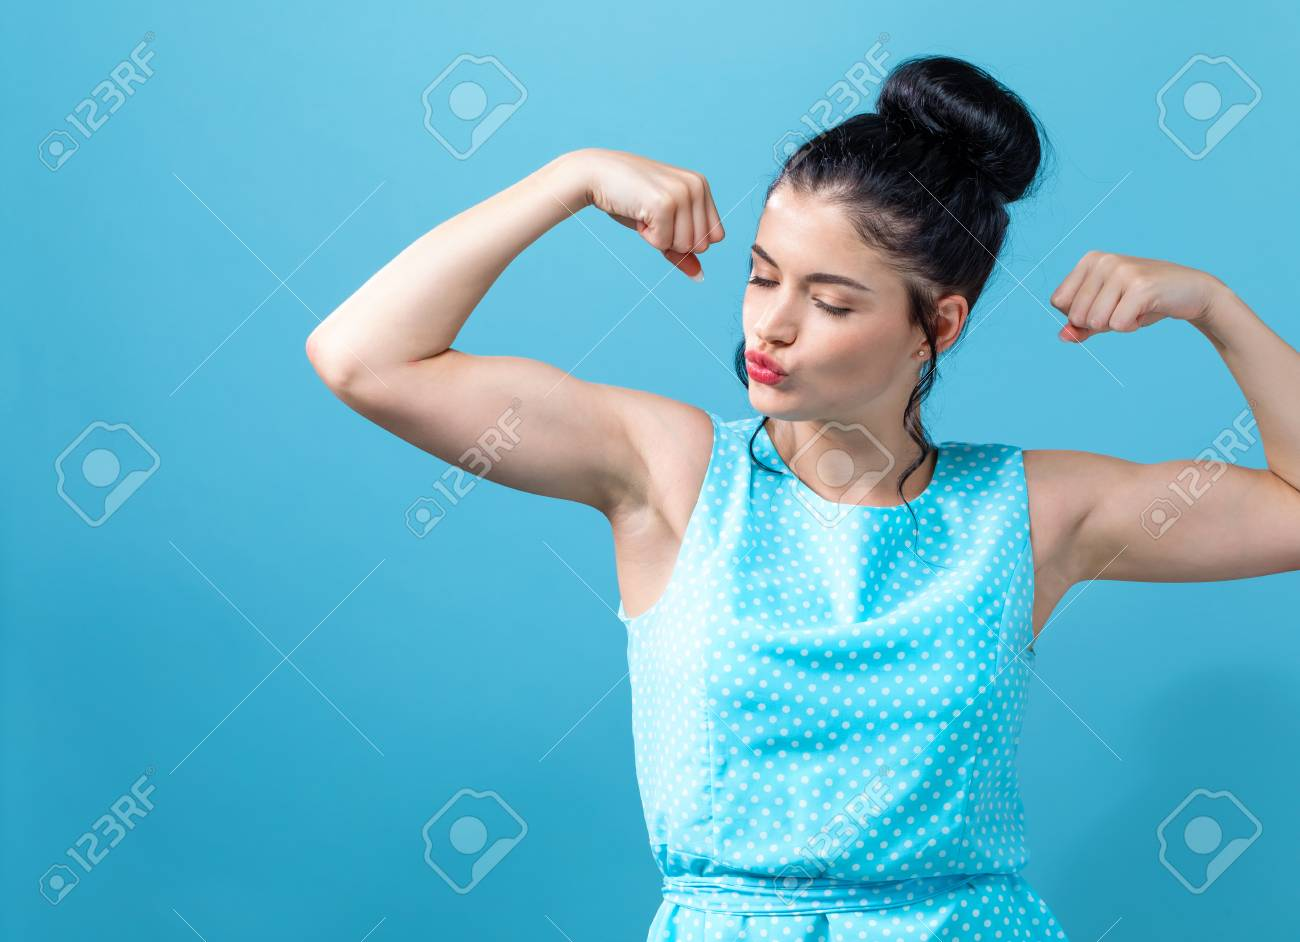 Powerful young woman in a success pose - 108316889